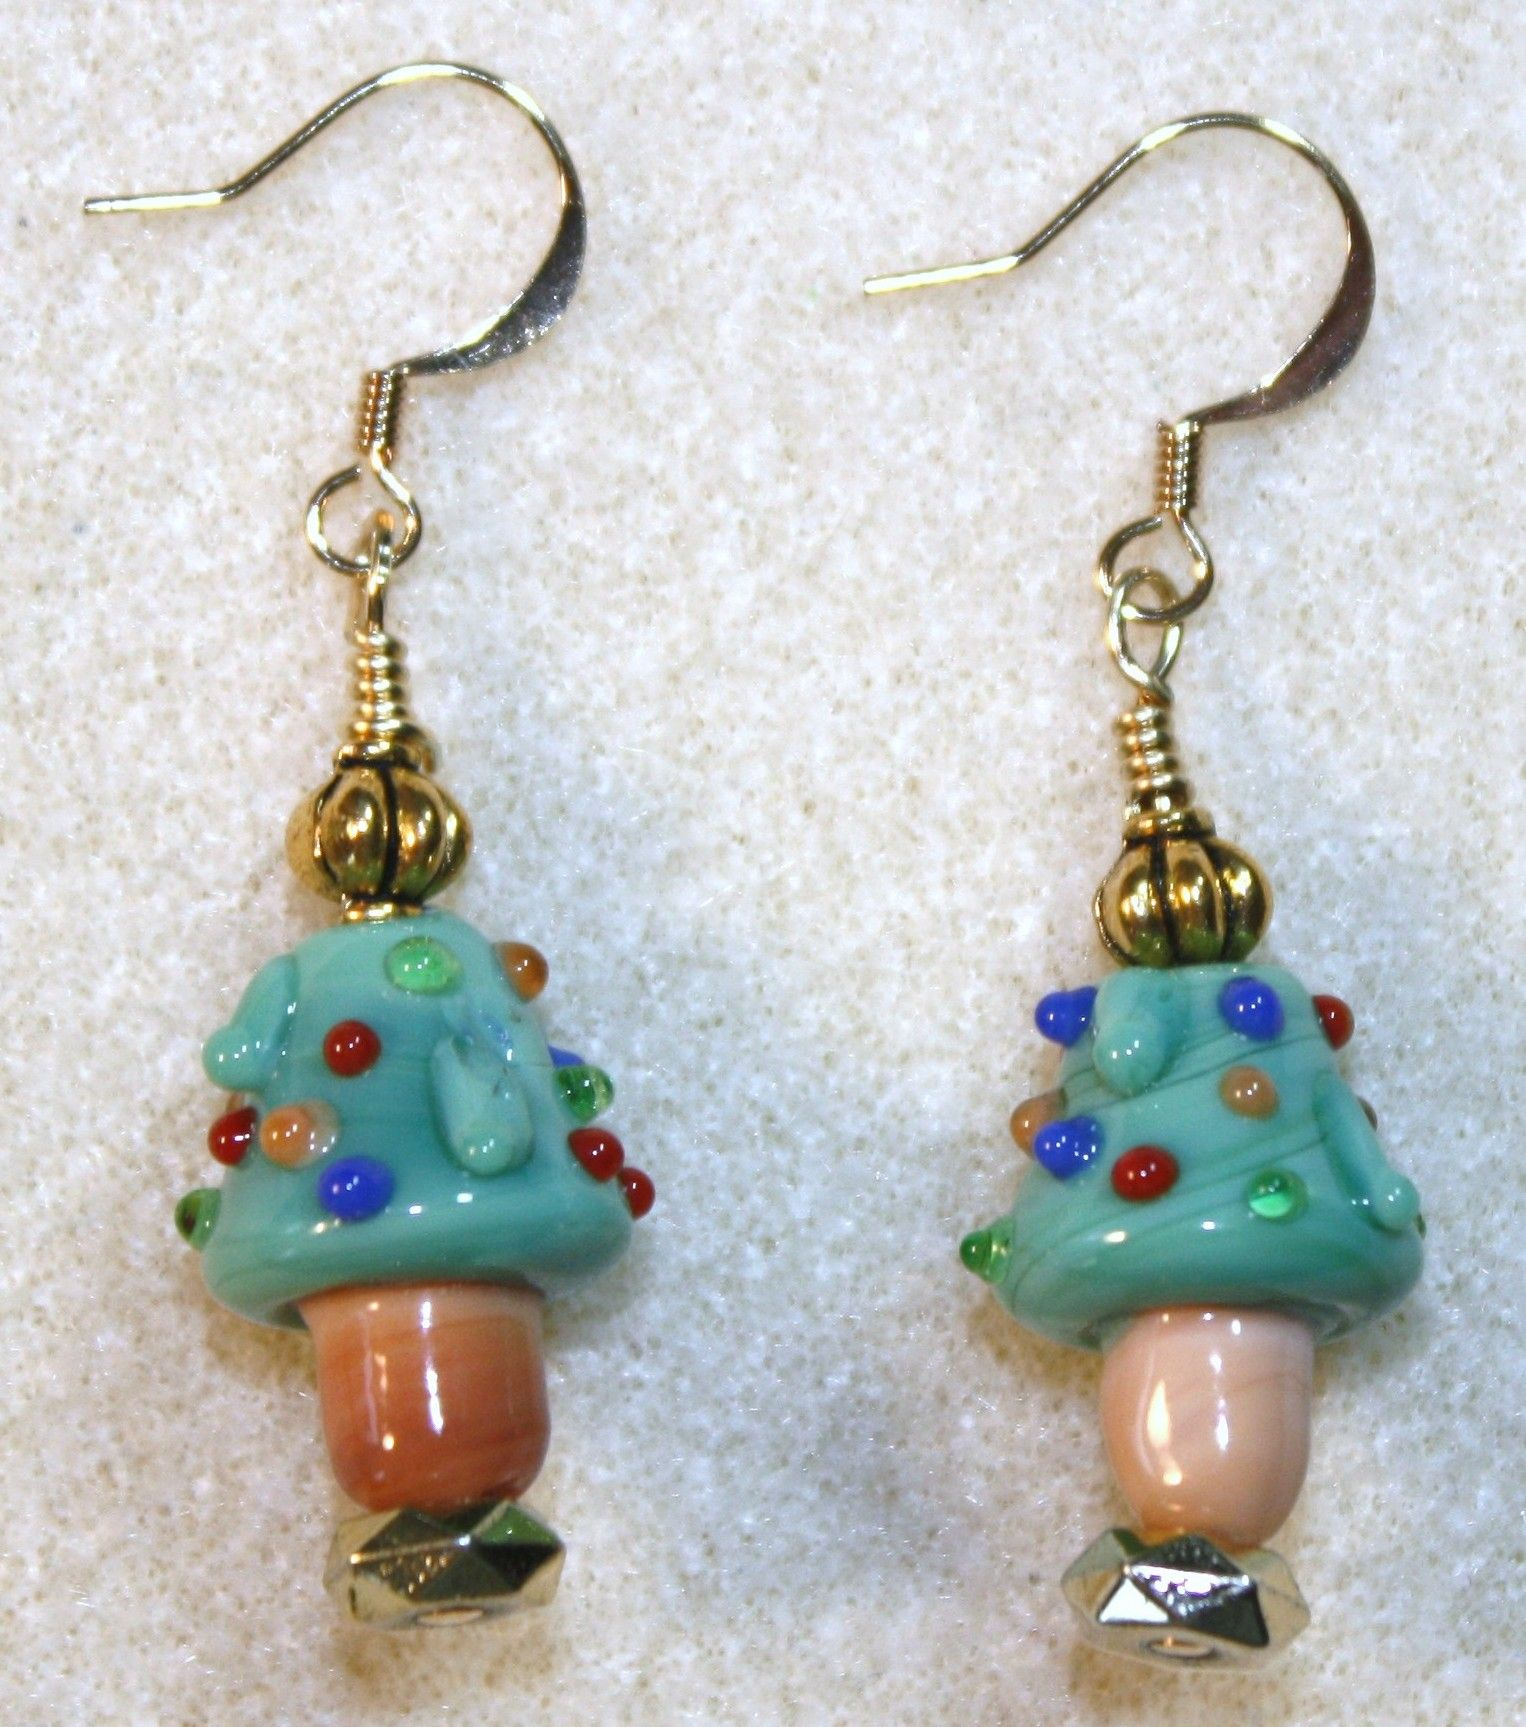 Handcrafted by Teal Palmetto, LLC. These tiny Christmas trees are all decorated for the holiday!  Glass Christmas tree focal beads are complemented with gold accent beads.  This pair has gold fish hook ear wires.  Price: $14.